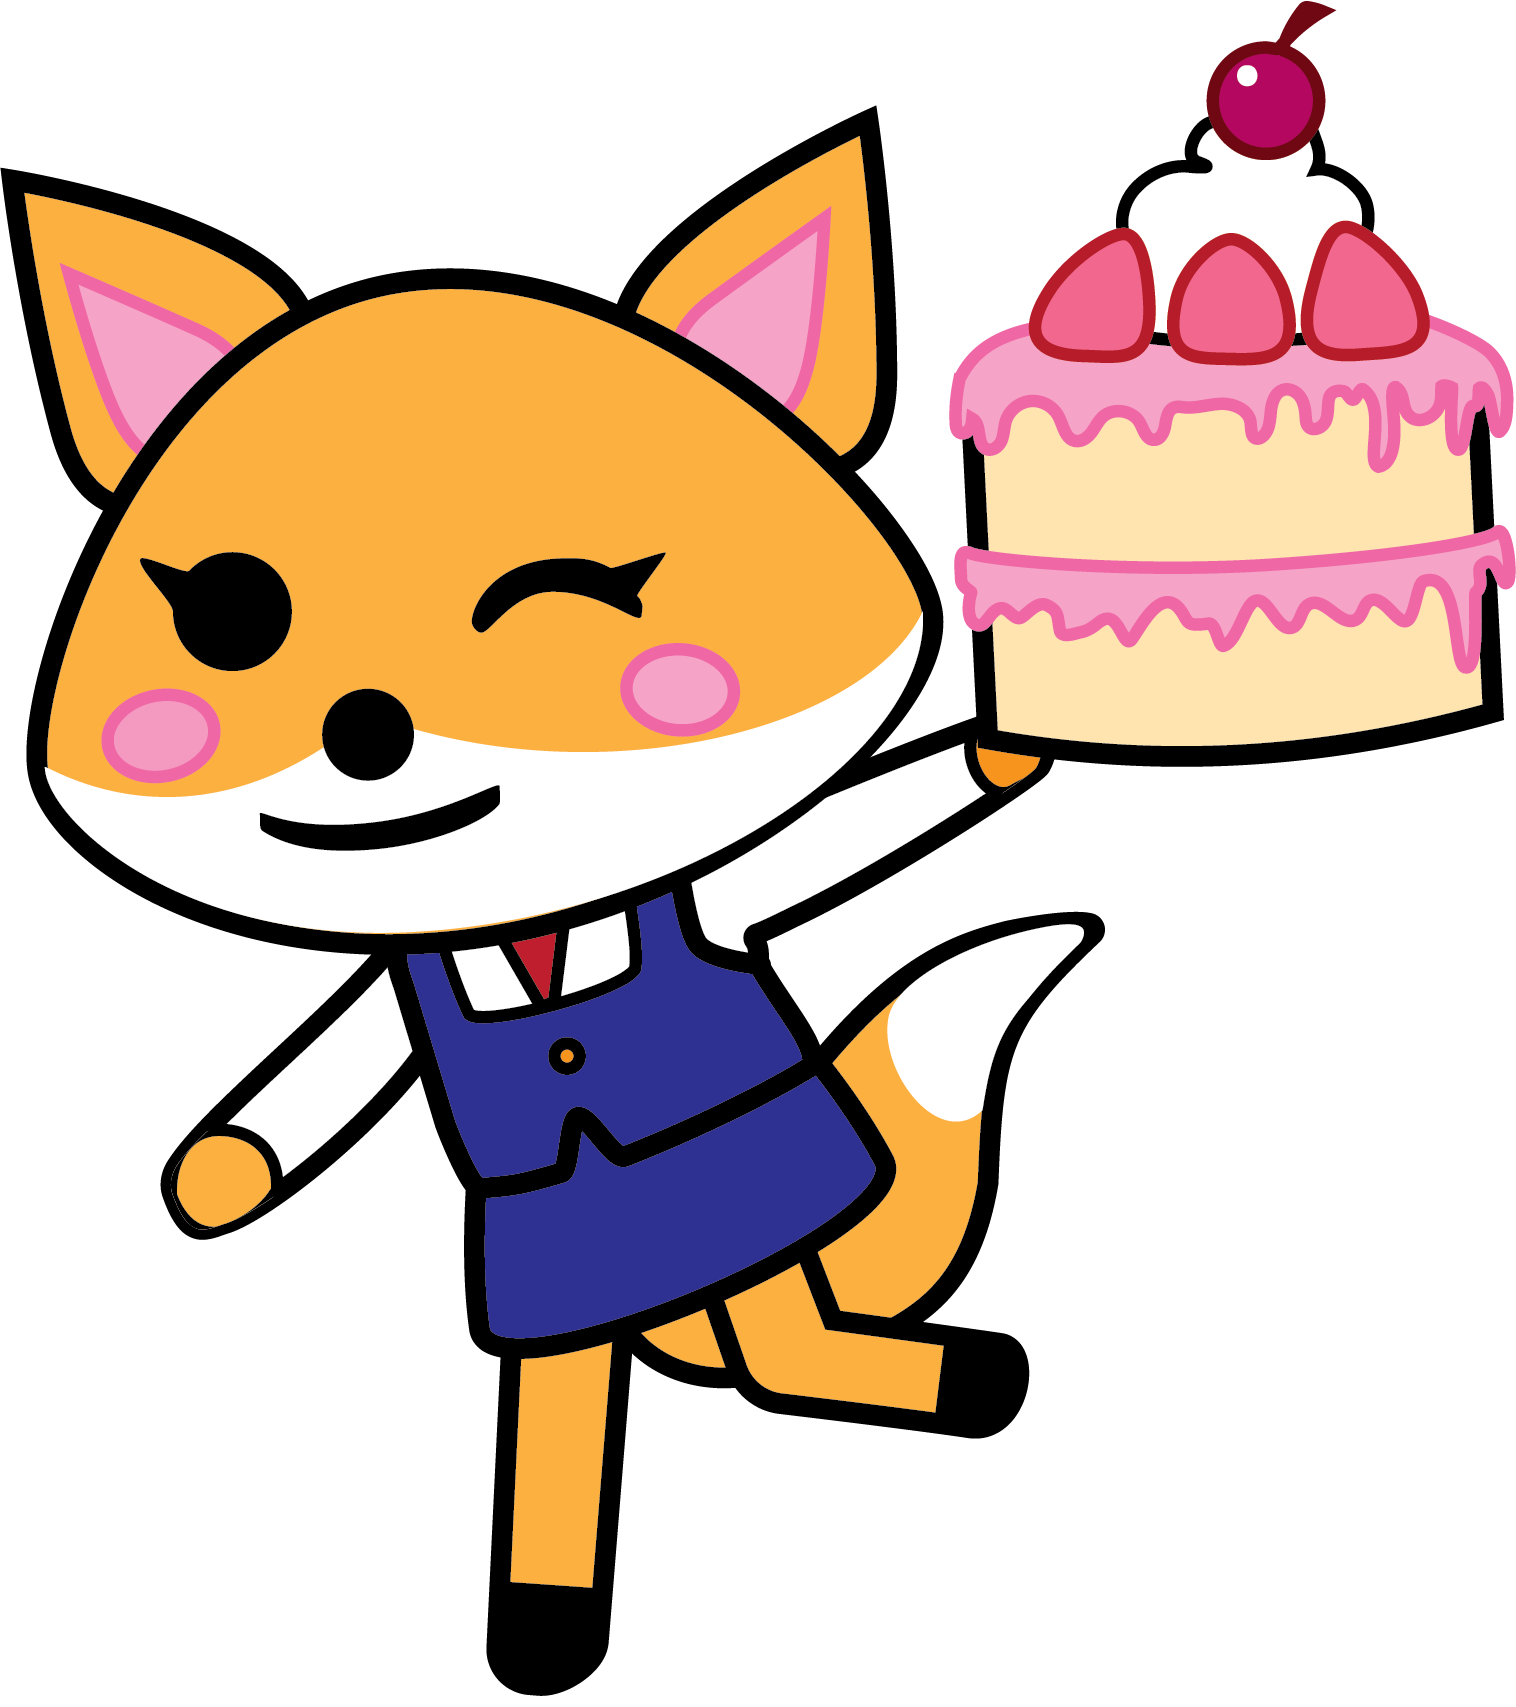 2018-08Aug-31-foxy lady illustration.png